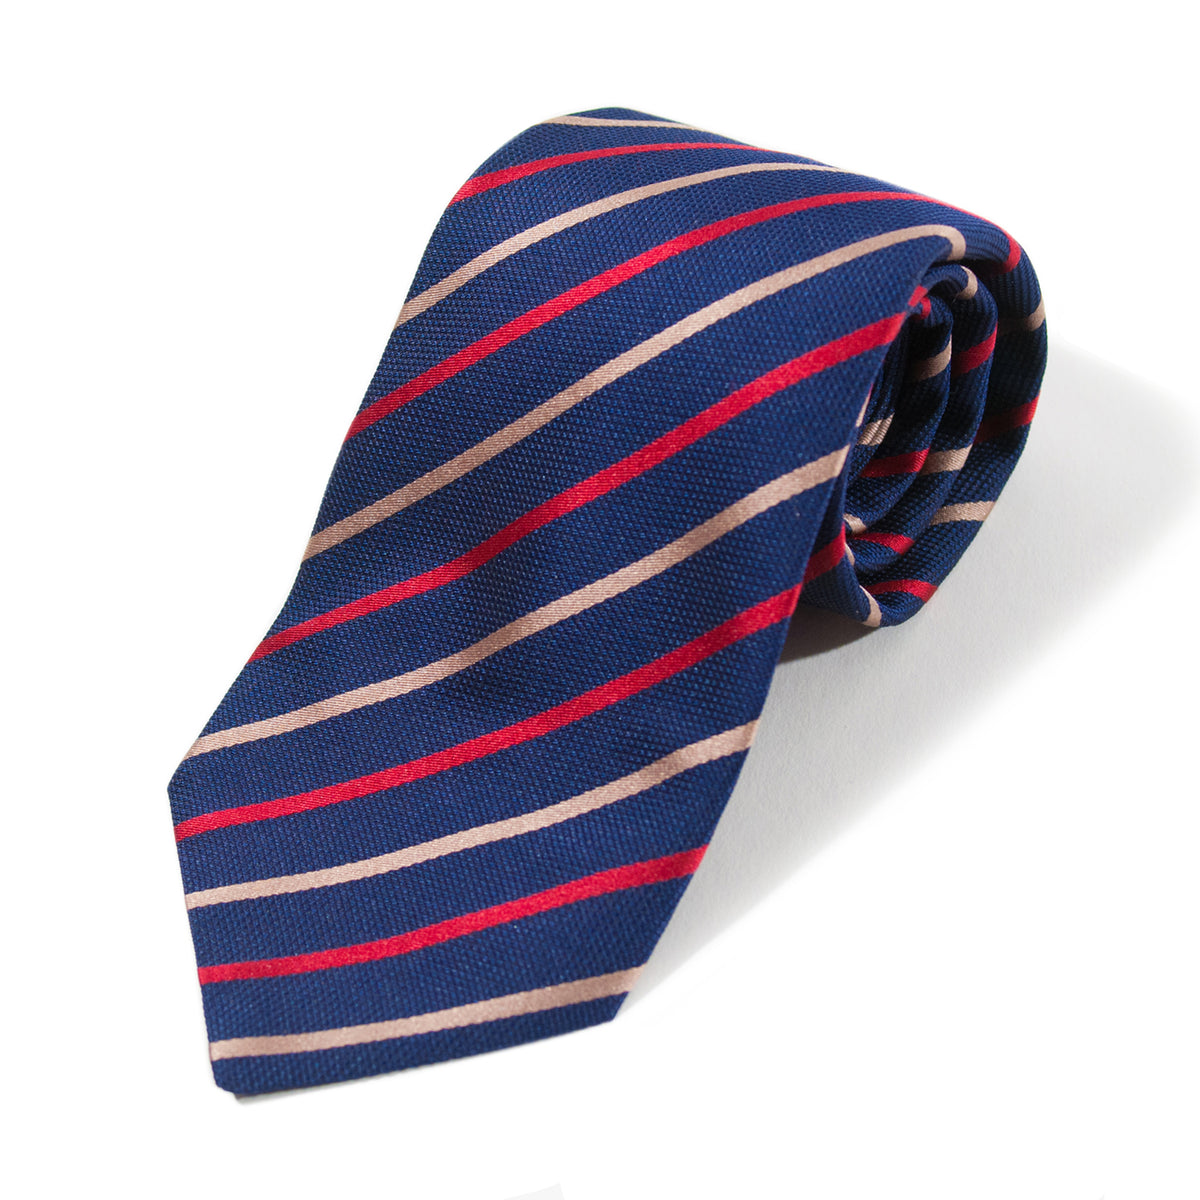 Tino Cosma Navy Blue Striped Silk Tie for Luxmrkt.com menswear consignment Edmonton